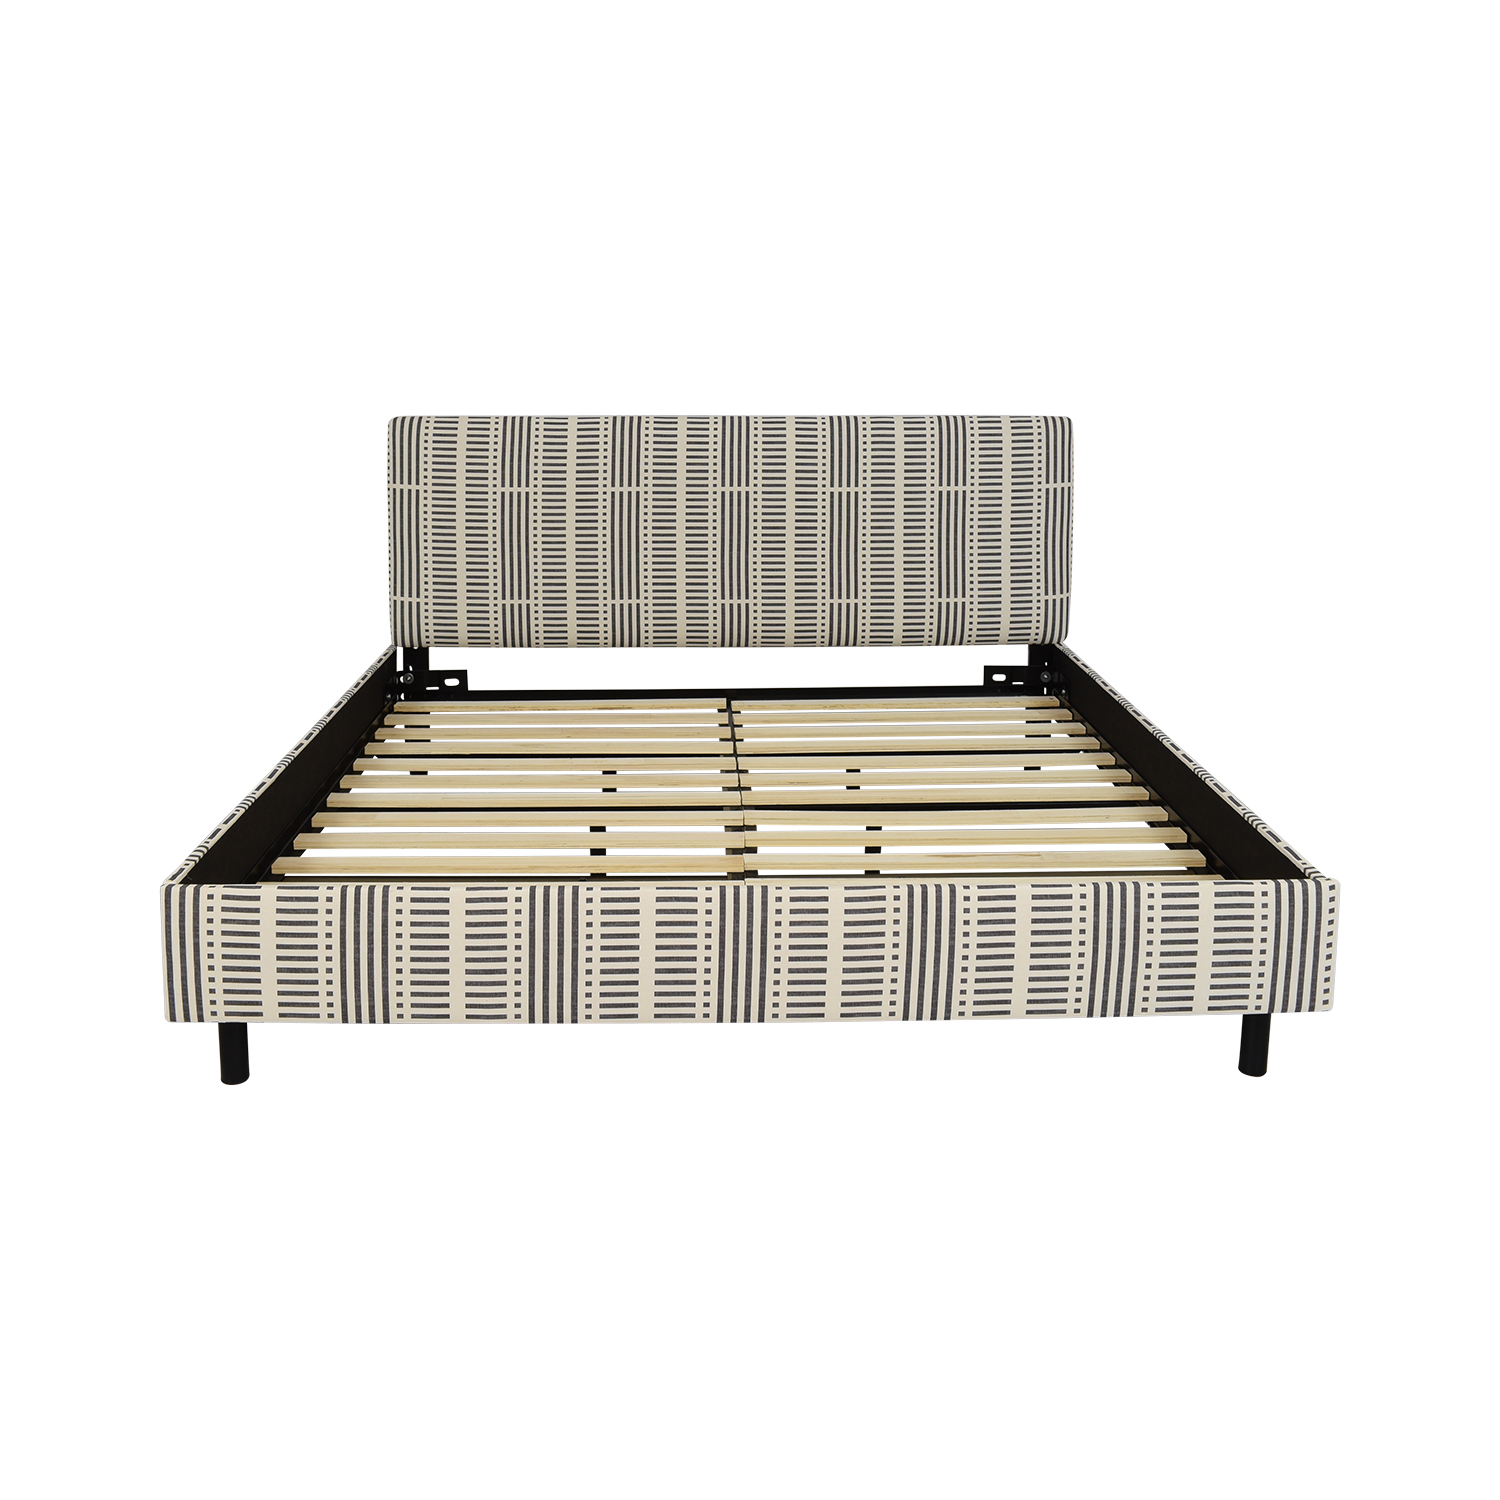 The Inside The Inside Custom King Platform Bed on sale